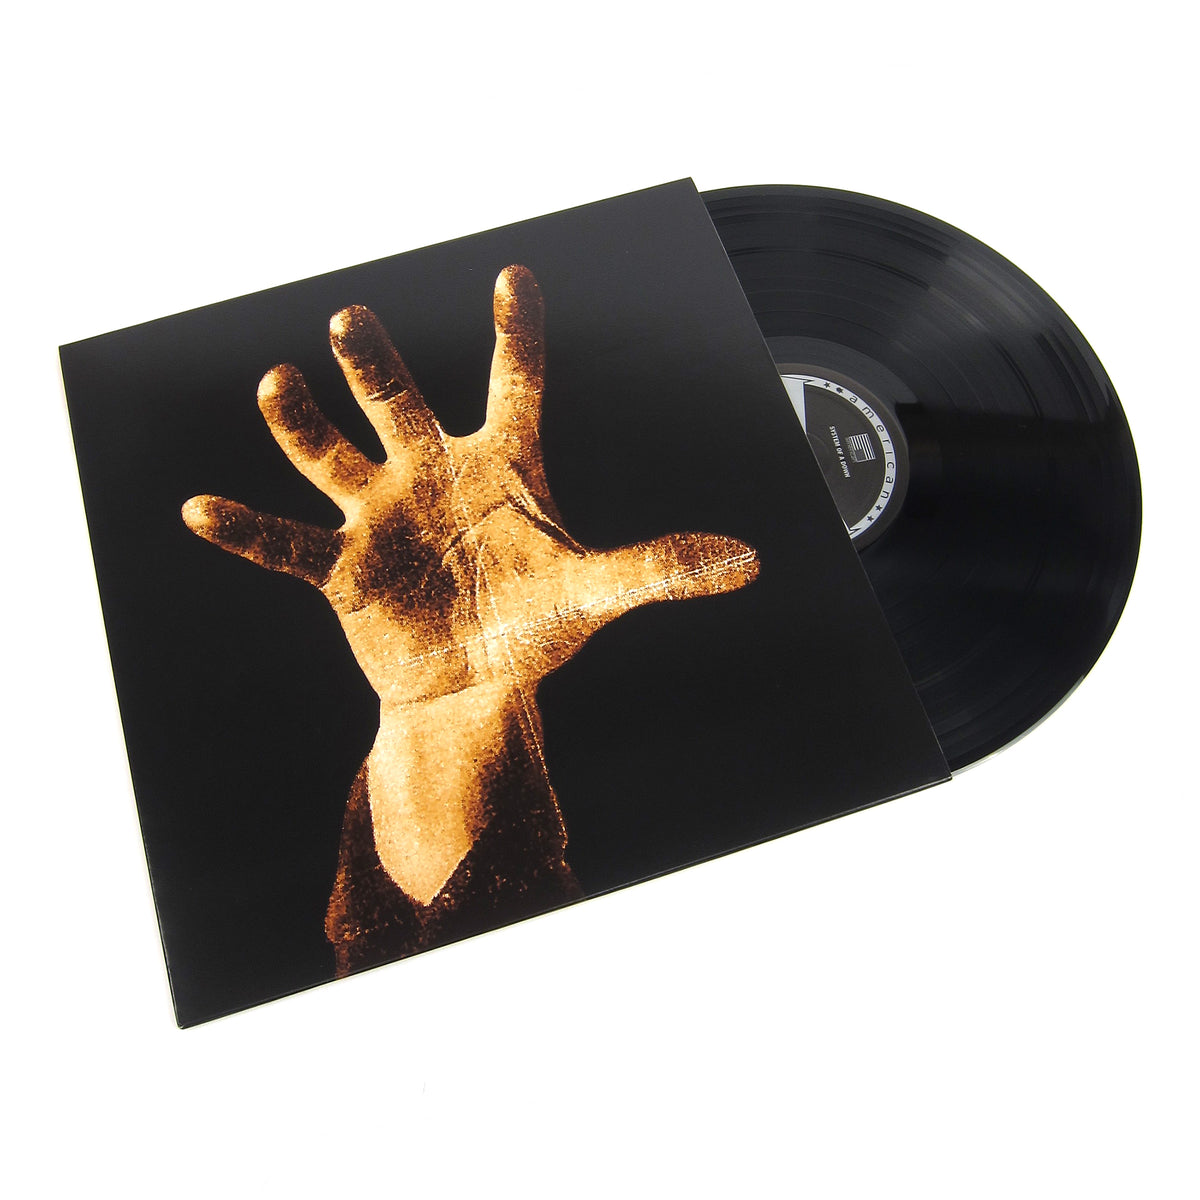 System Of A Down: System Of A Down Vinyl LP